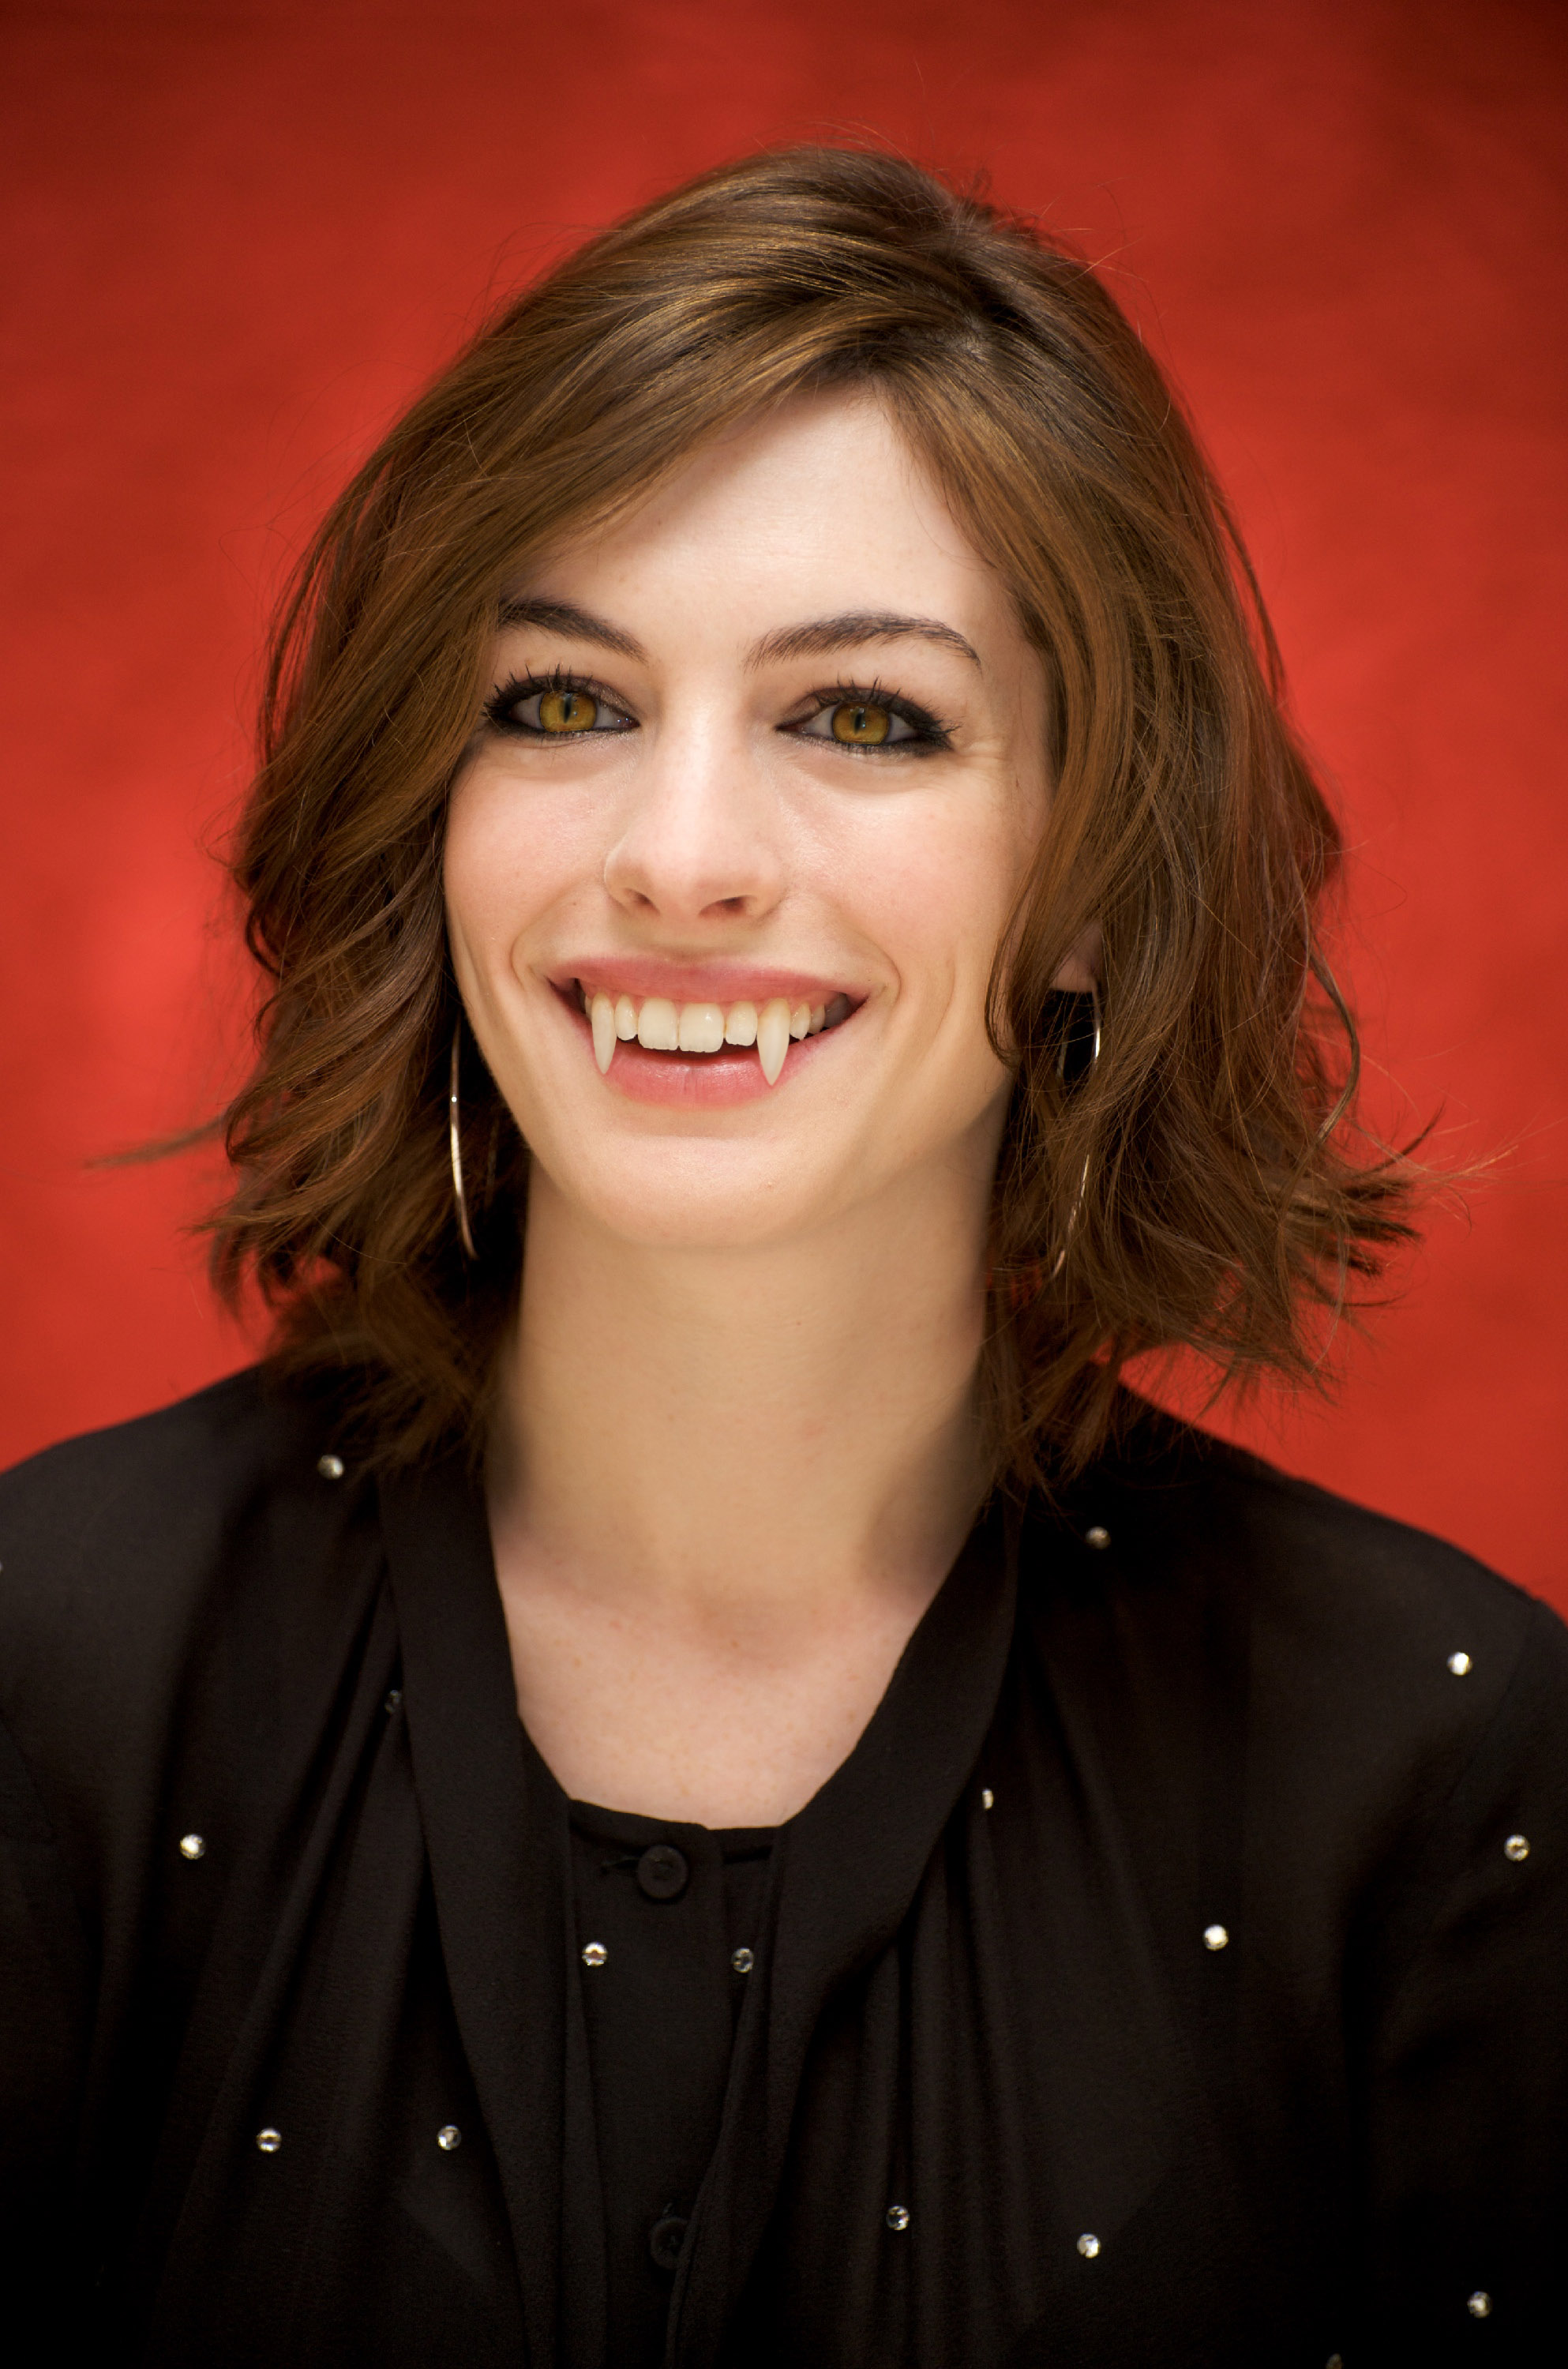 vampire anne hathaway by turlyvamp on  vampire anne hathaway by turlyvamp vampire anne hathaway by turlyvamp